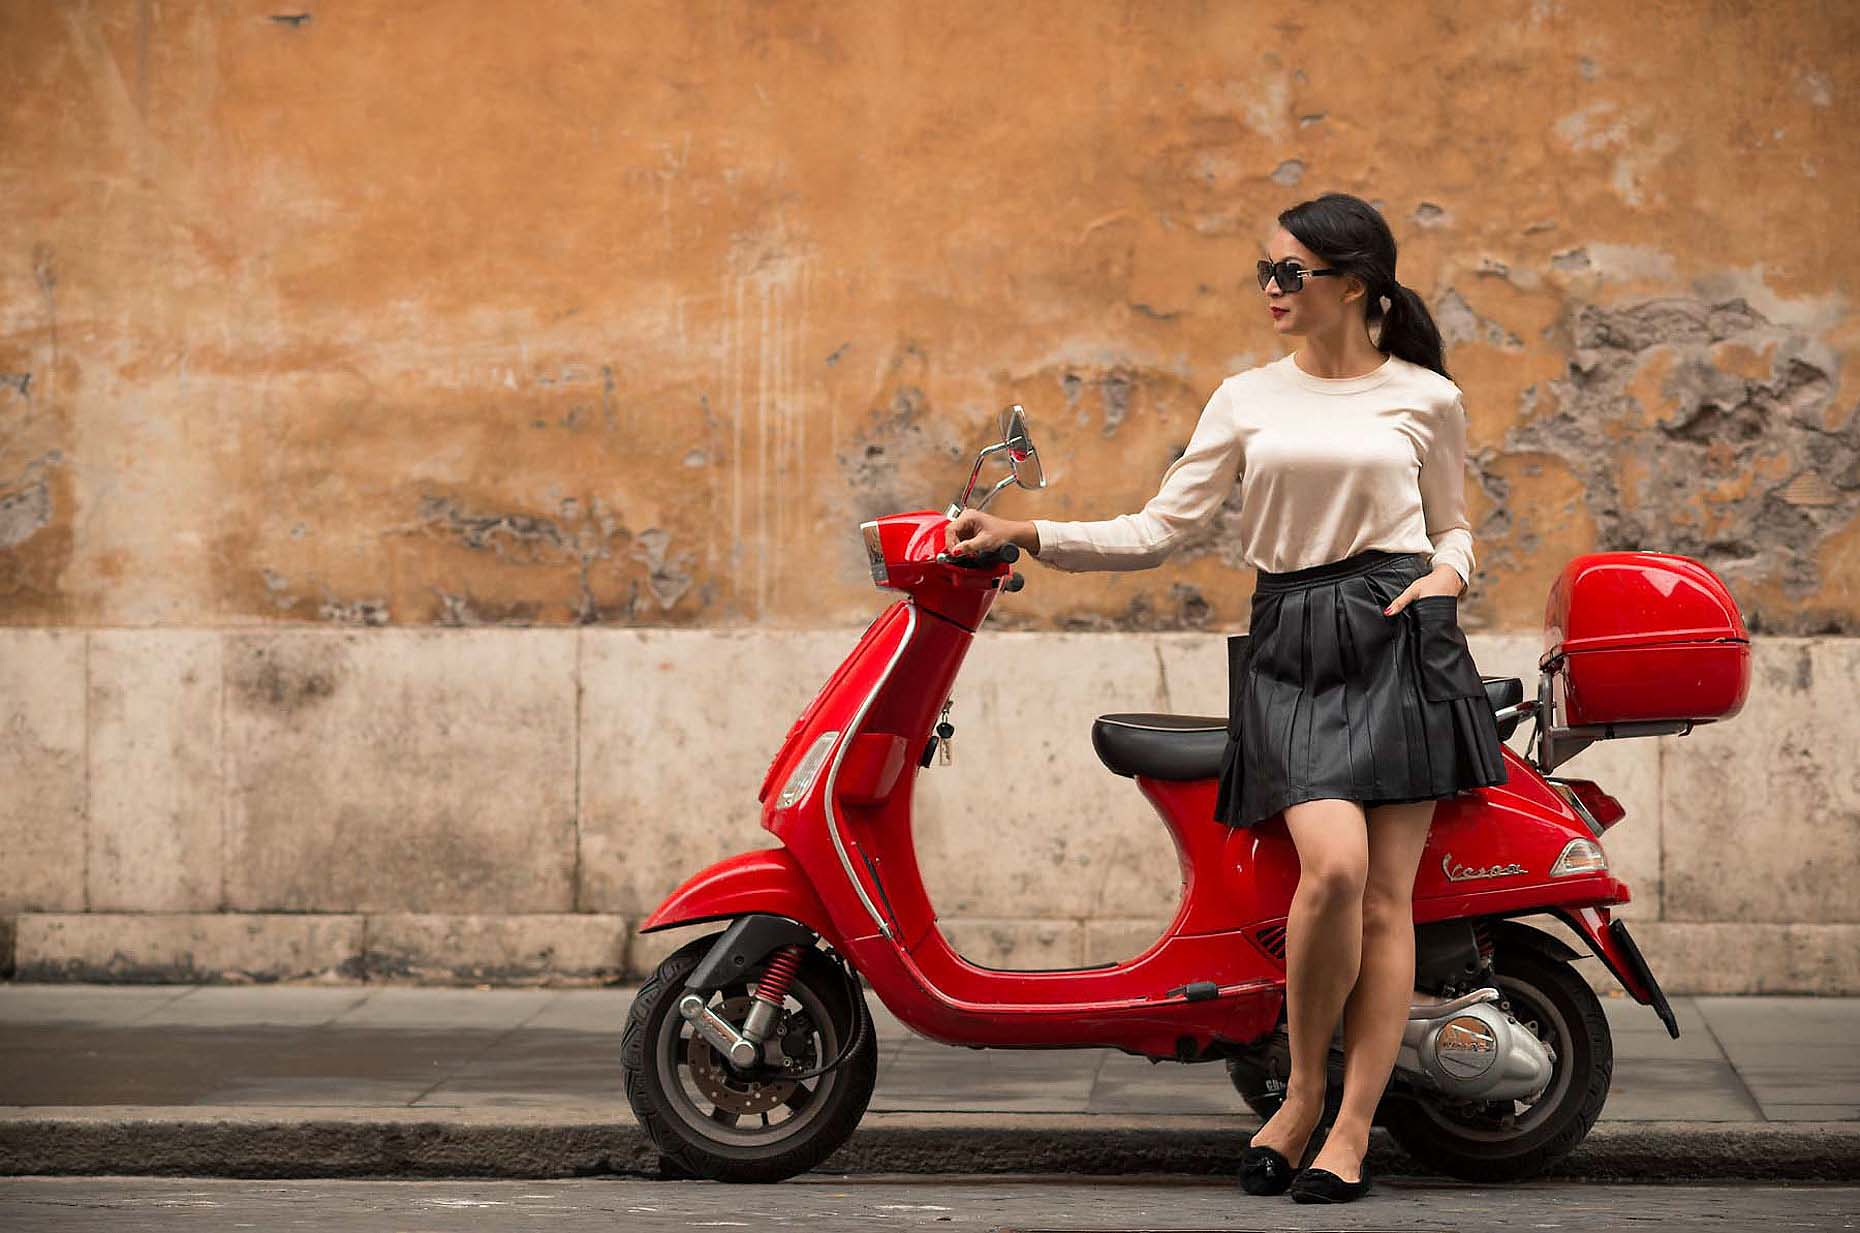 vespa-red-moped-street-rome-italy-beautiful-woman-24